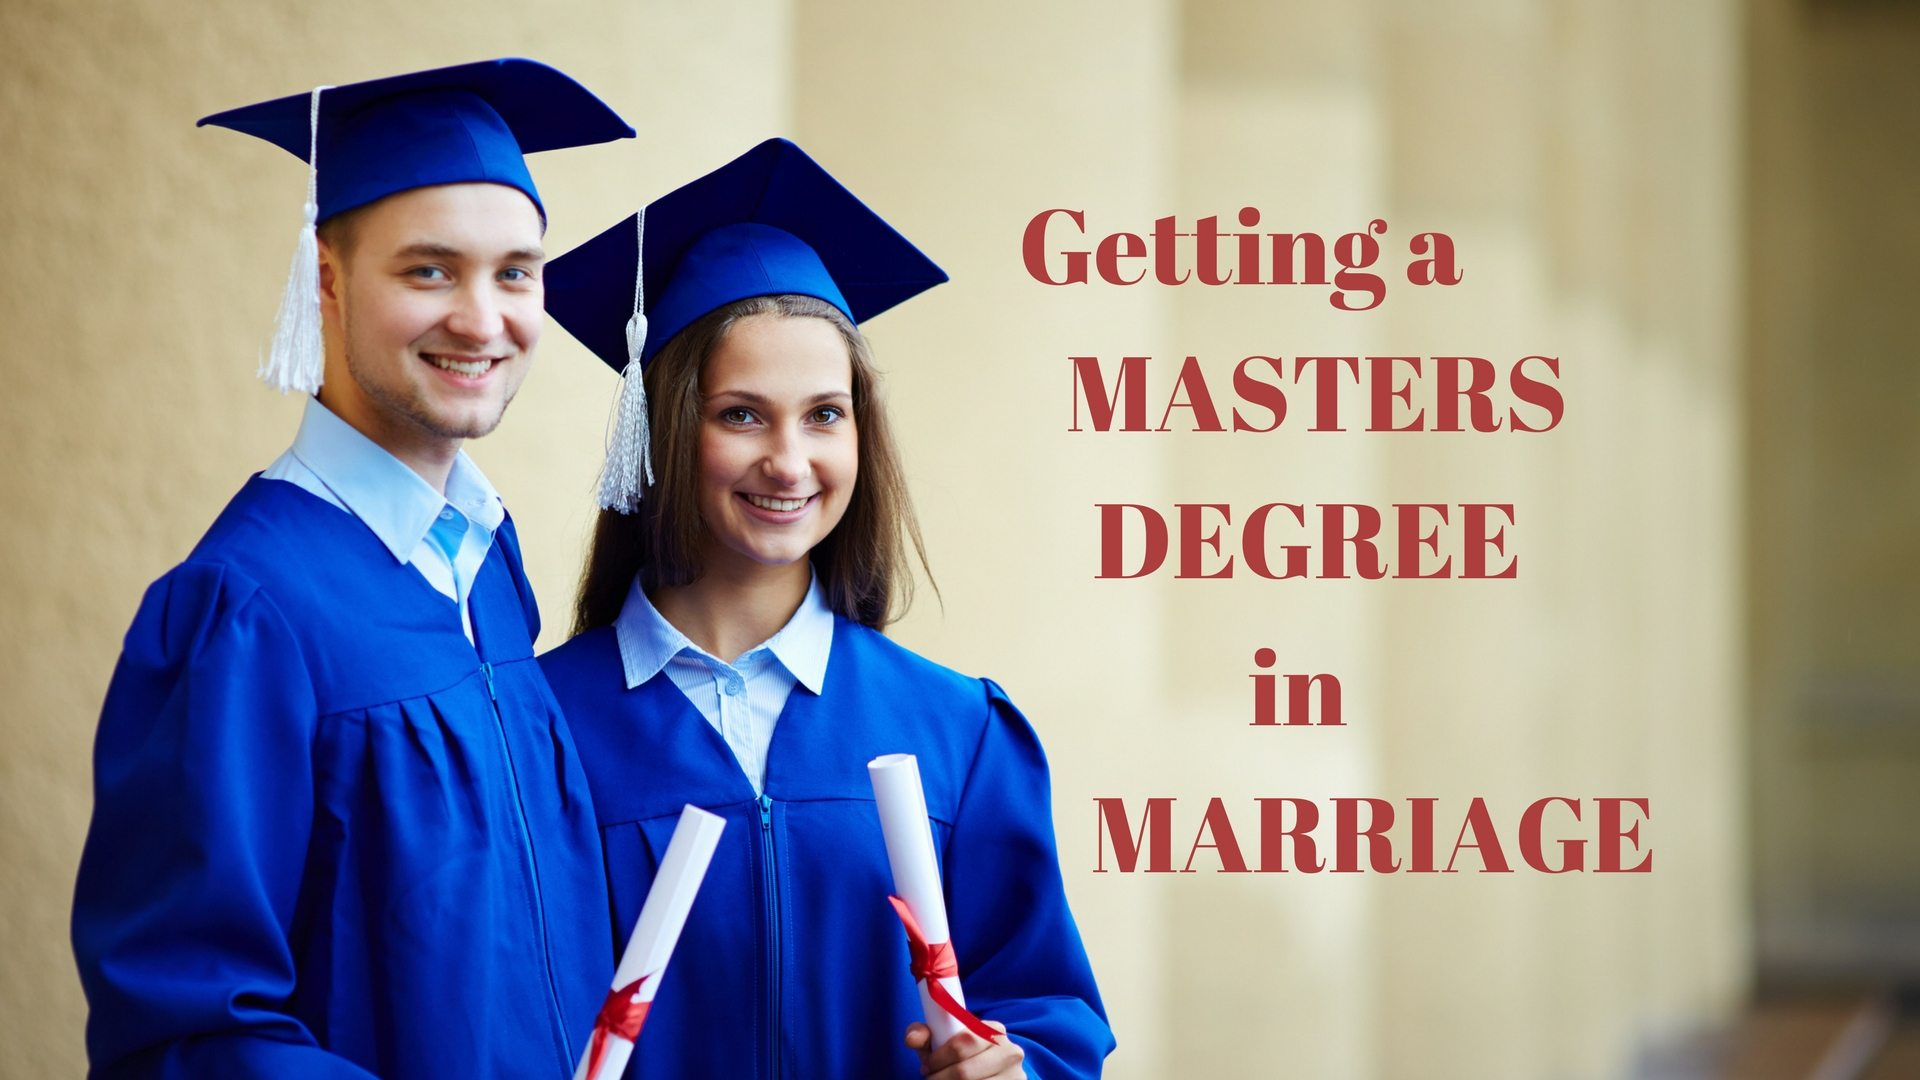 Masters Degree in Marriage Graphic Stock Canva